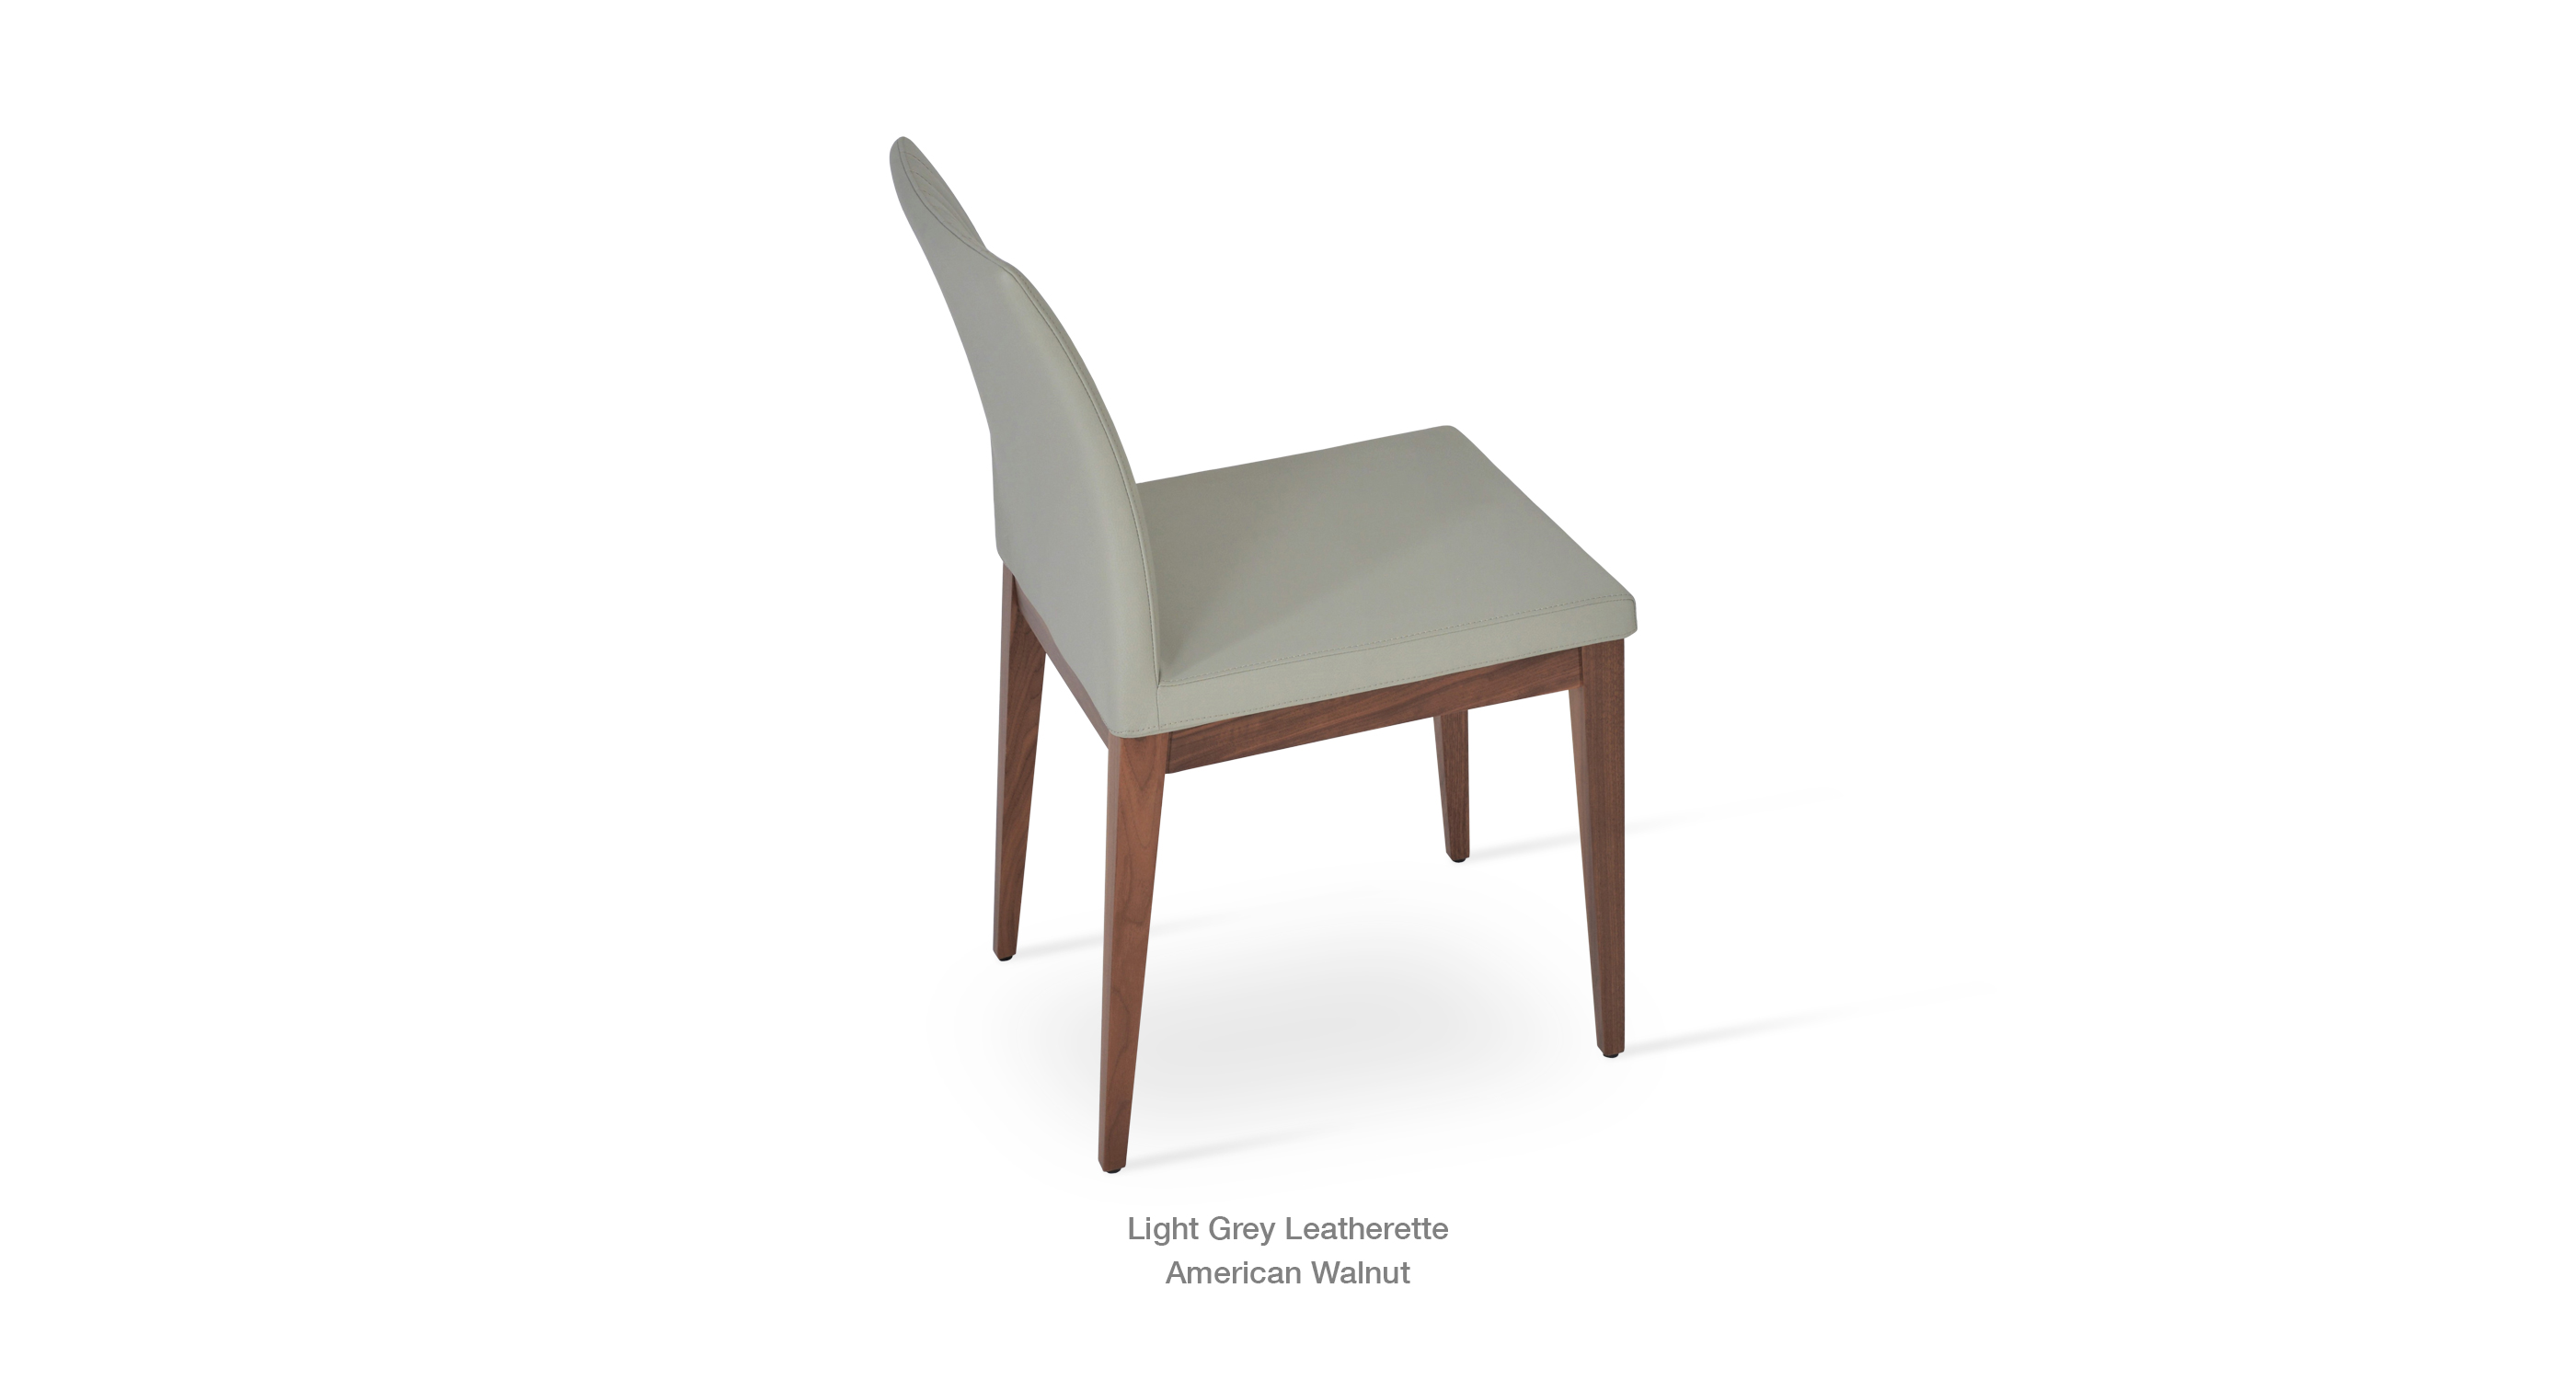 Bottega Wood Lightgrey Leatherette